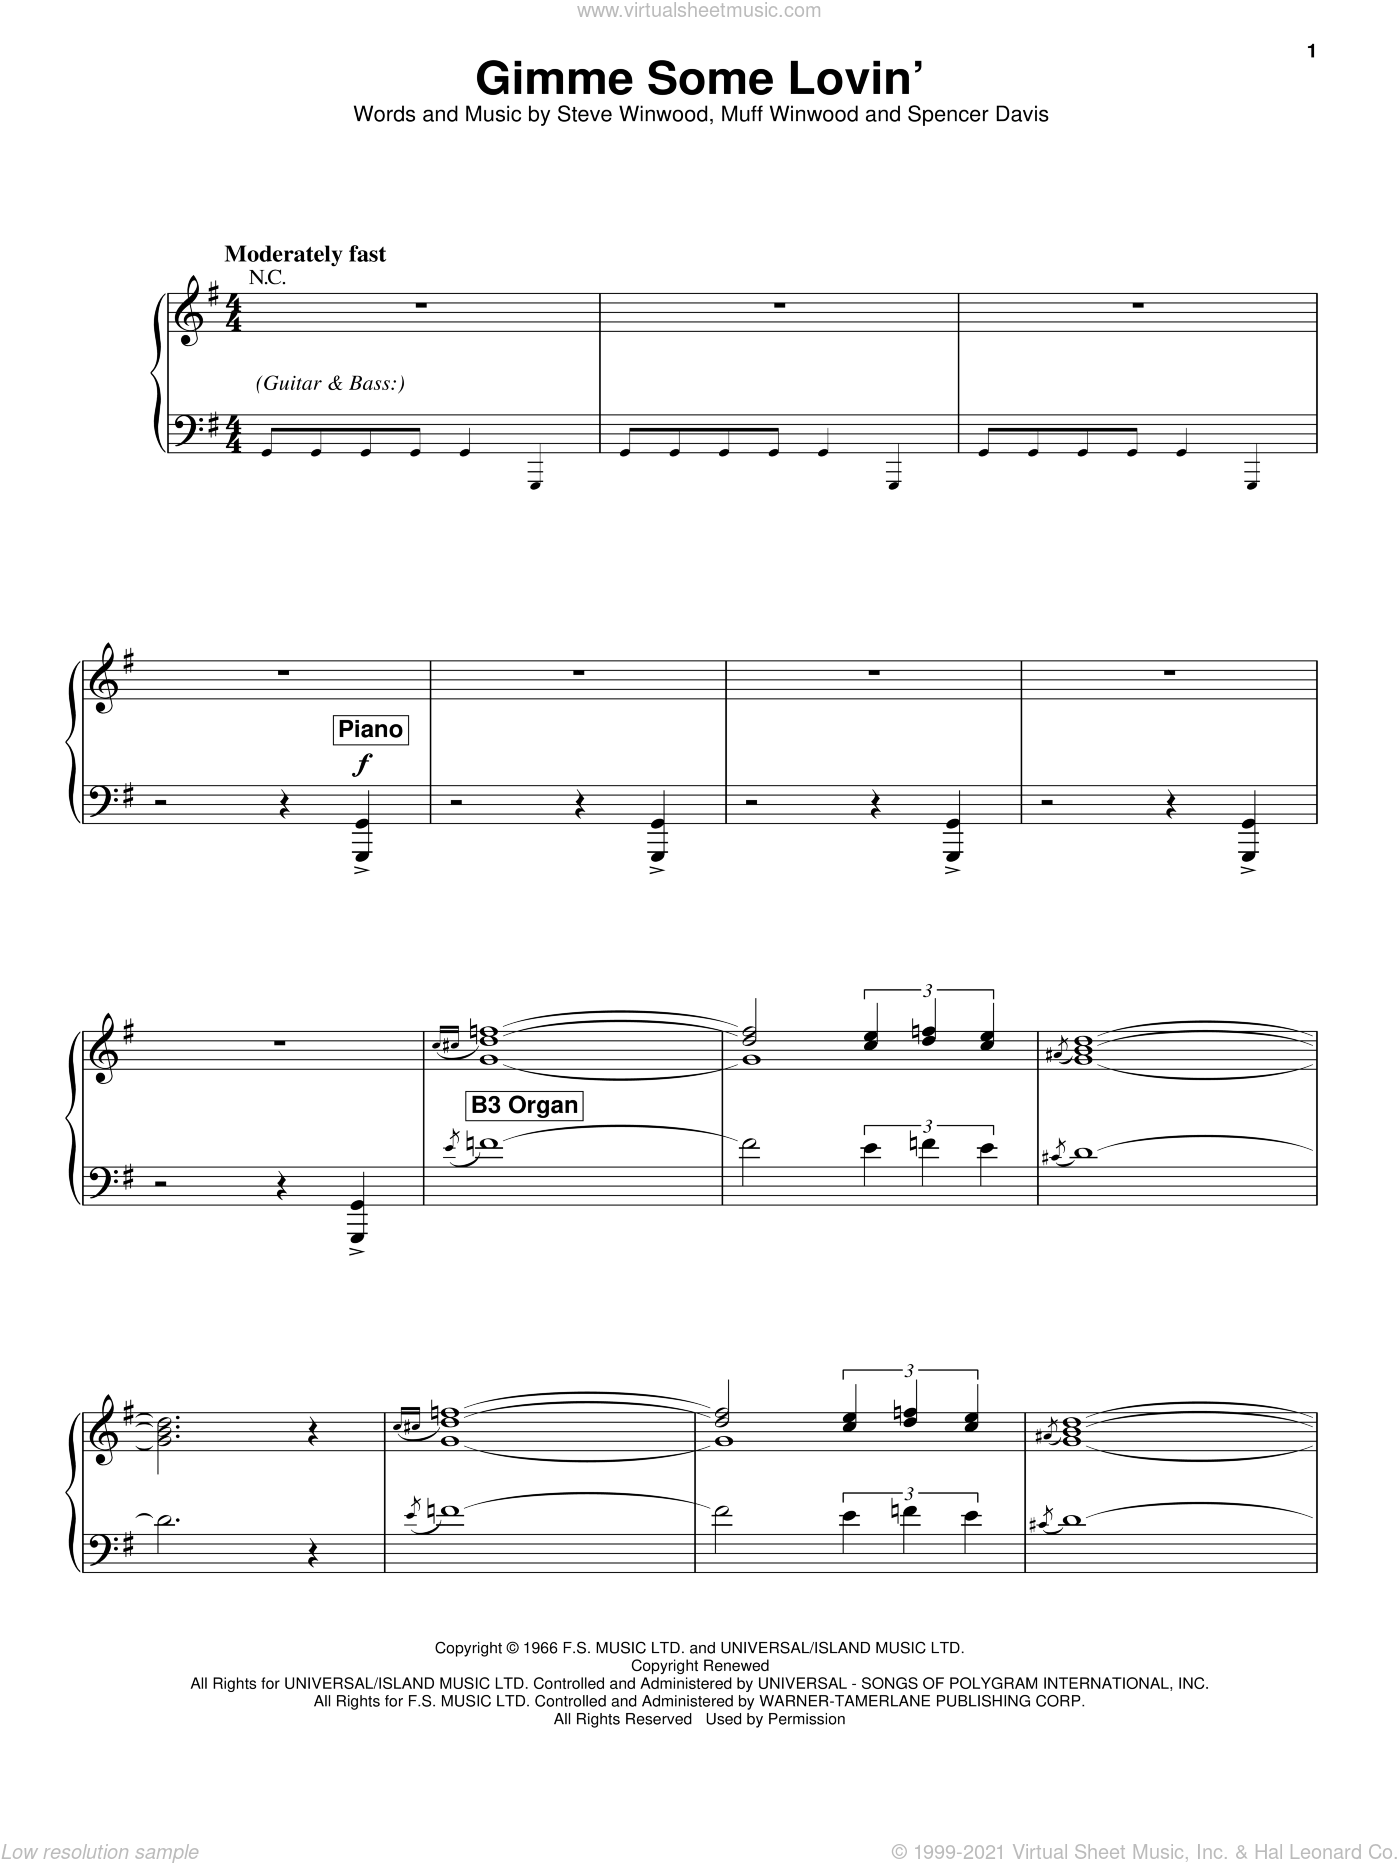 Gimme Some Lovin' sheet music for voice and piano by Spencer Davis, Muff Winwood and Steve Winwood. Score Image Preview.